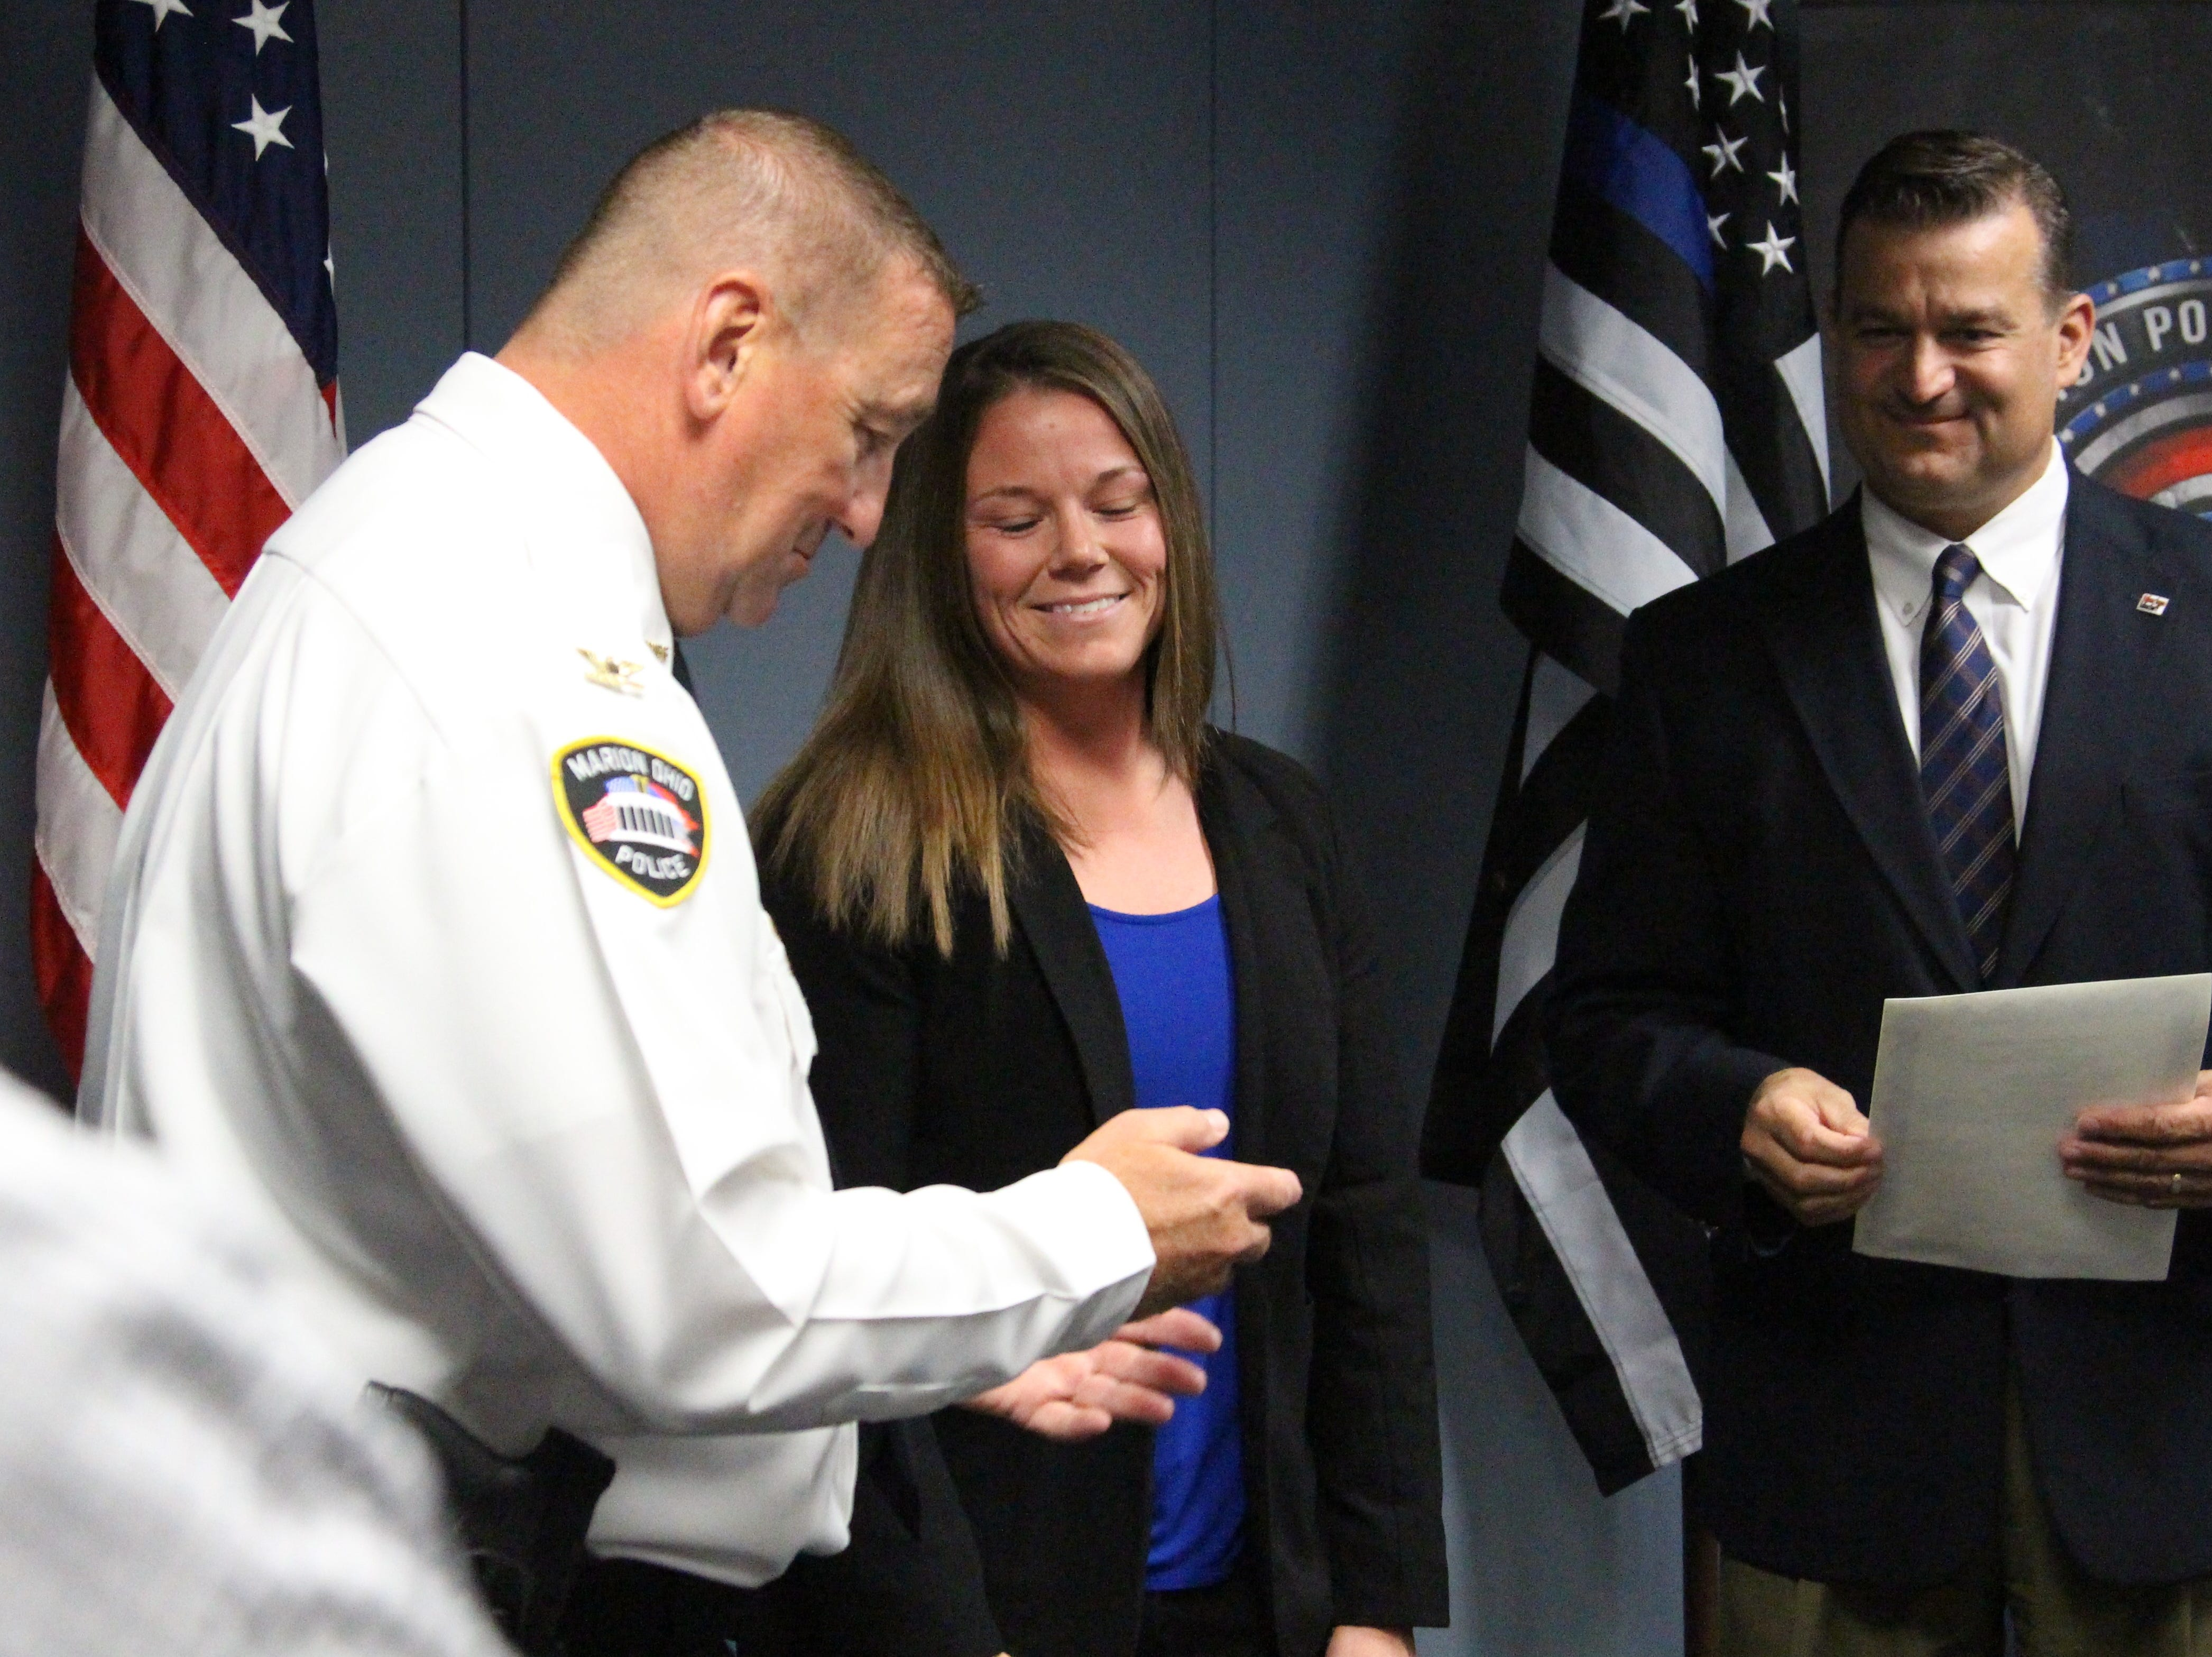 Dena Benroth looks at her new badge that will be pinned to her shirt by a loved one during a ceremony on Monday that welcomed four new officers to the Marion Police Department.